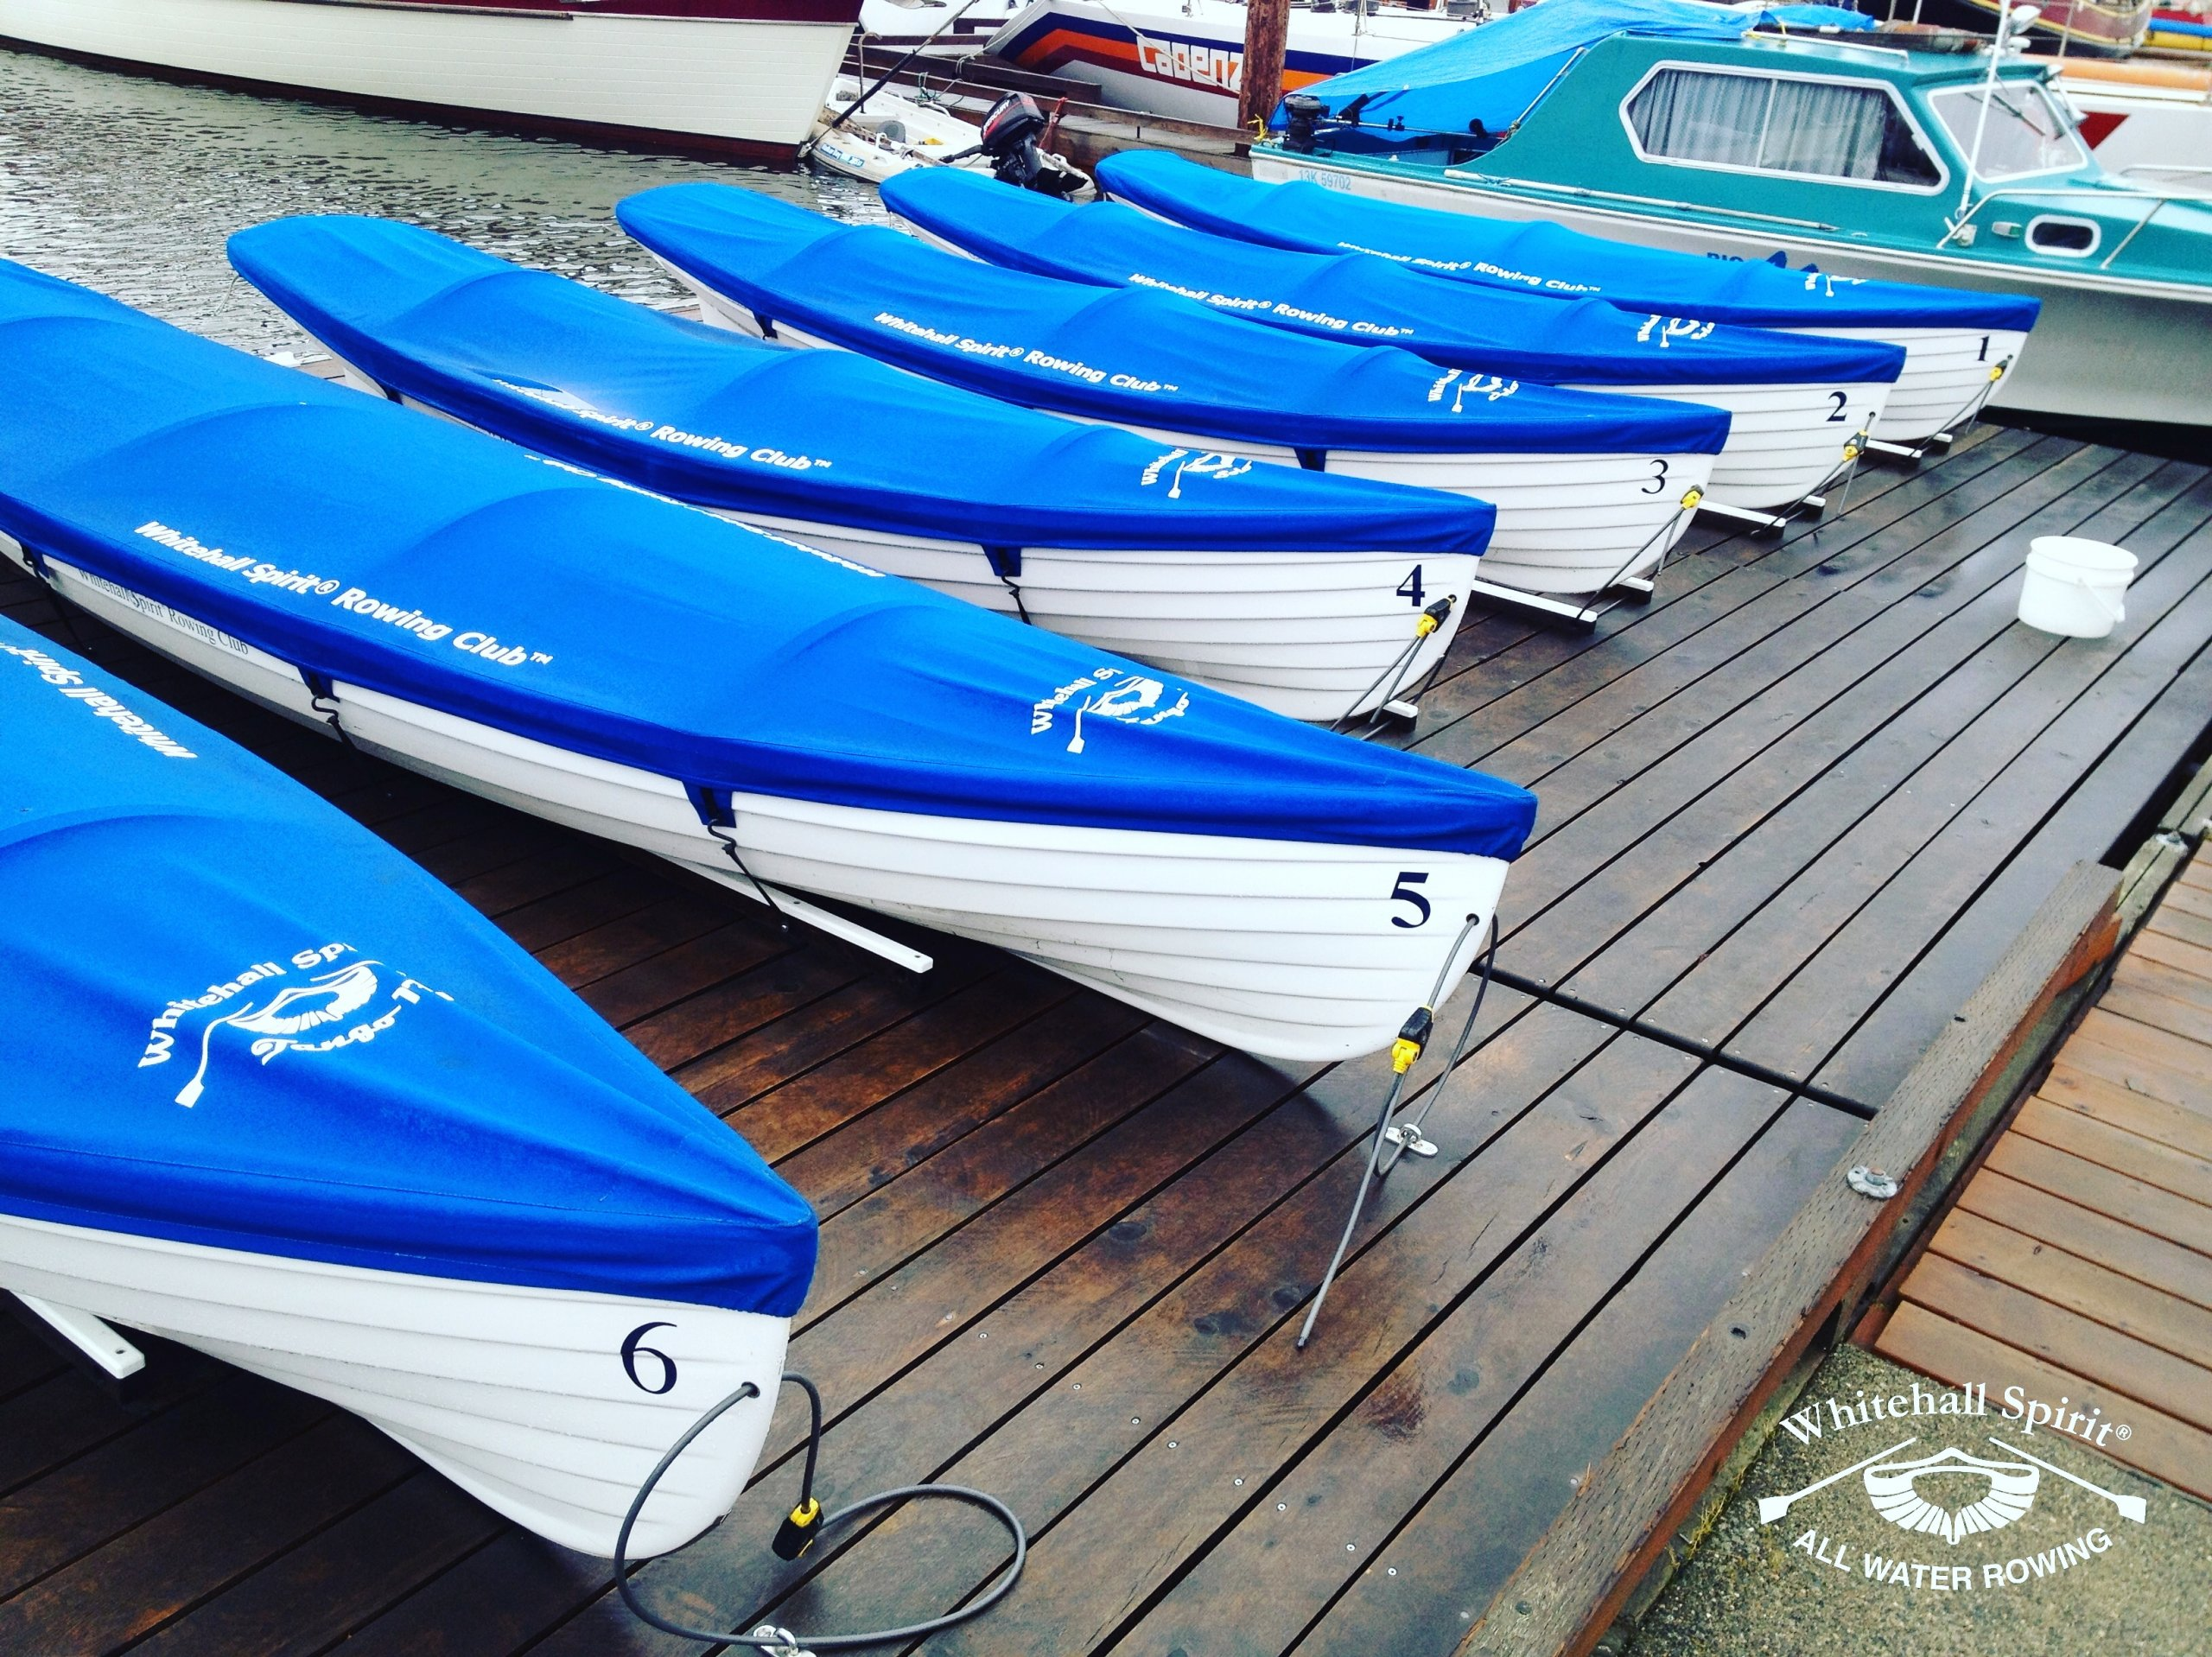 Whitehall Spirit® Rowing Club: Whitehall Rowing & Sail's 'Boat Share' Rowing Club provides 'All Water' slide seat rowing in Victoria, British Columbia, Canada.